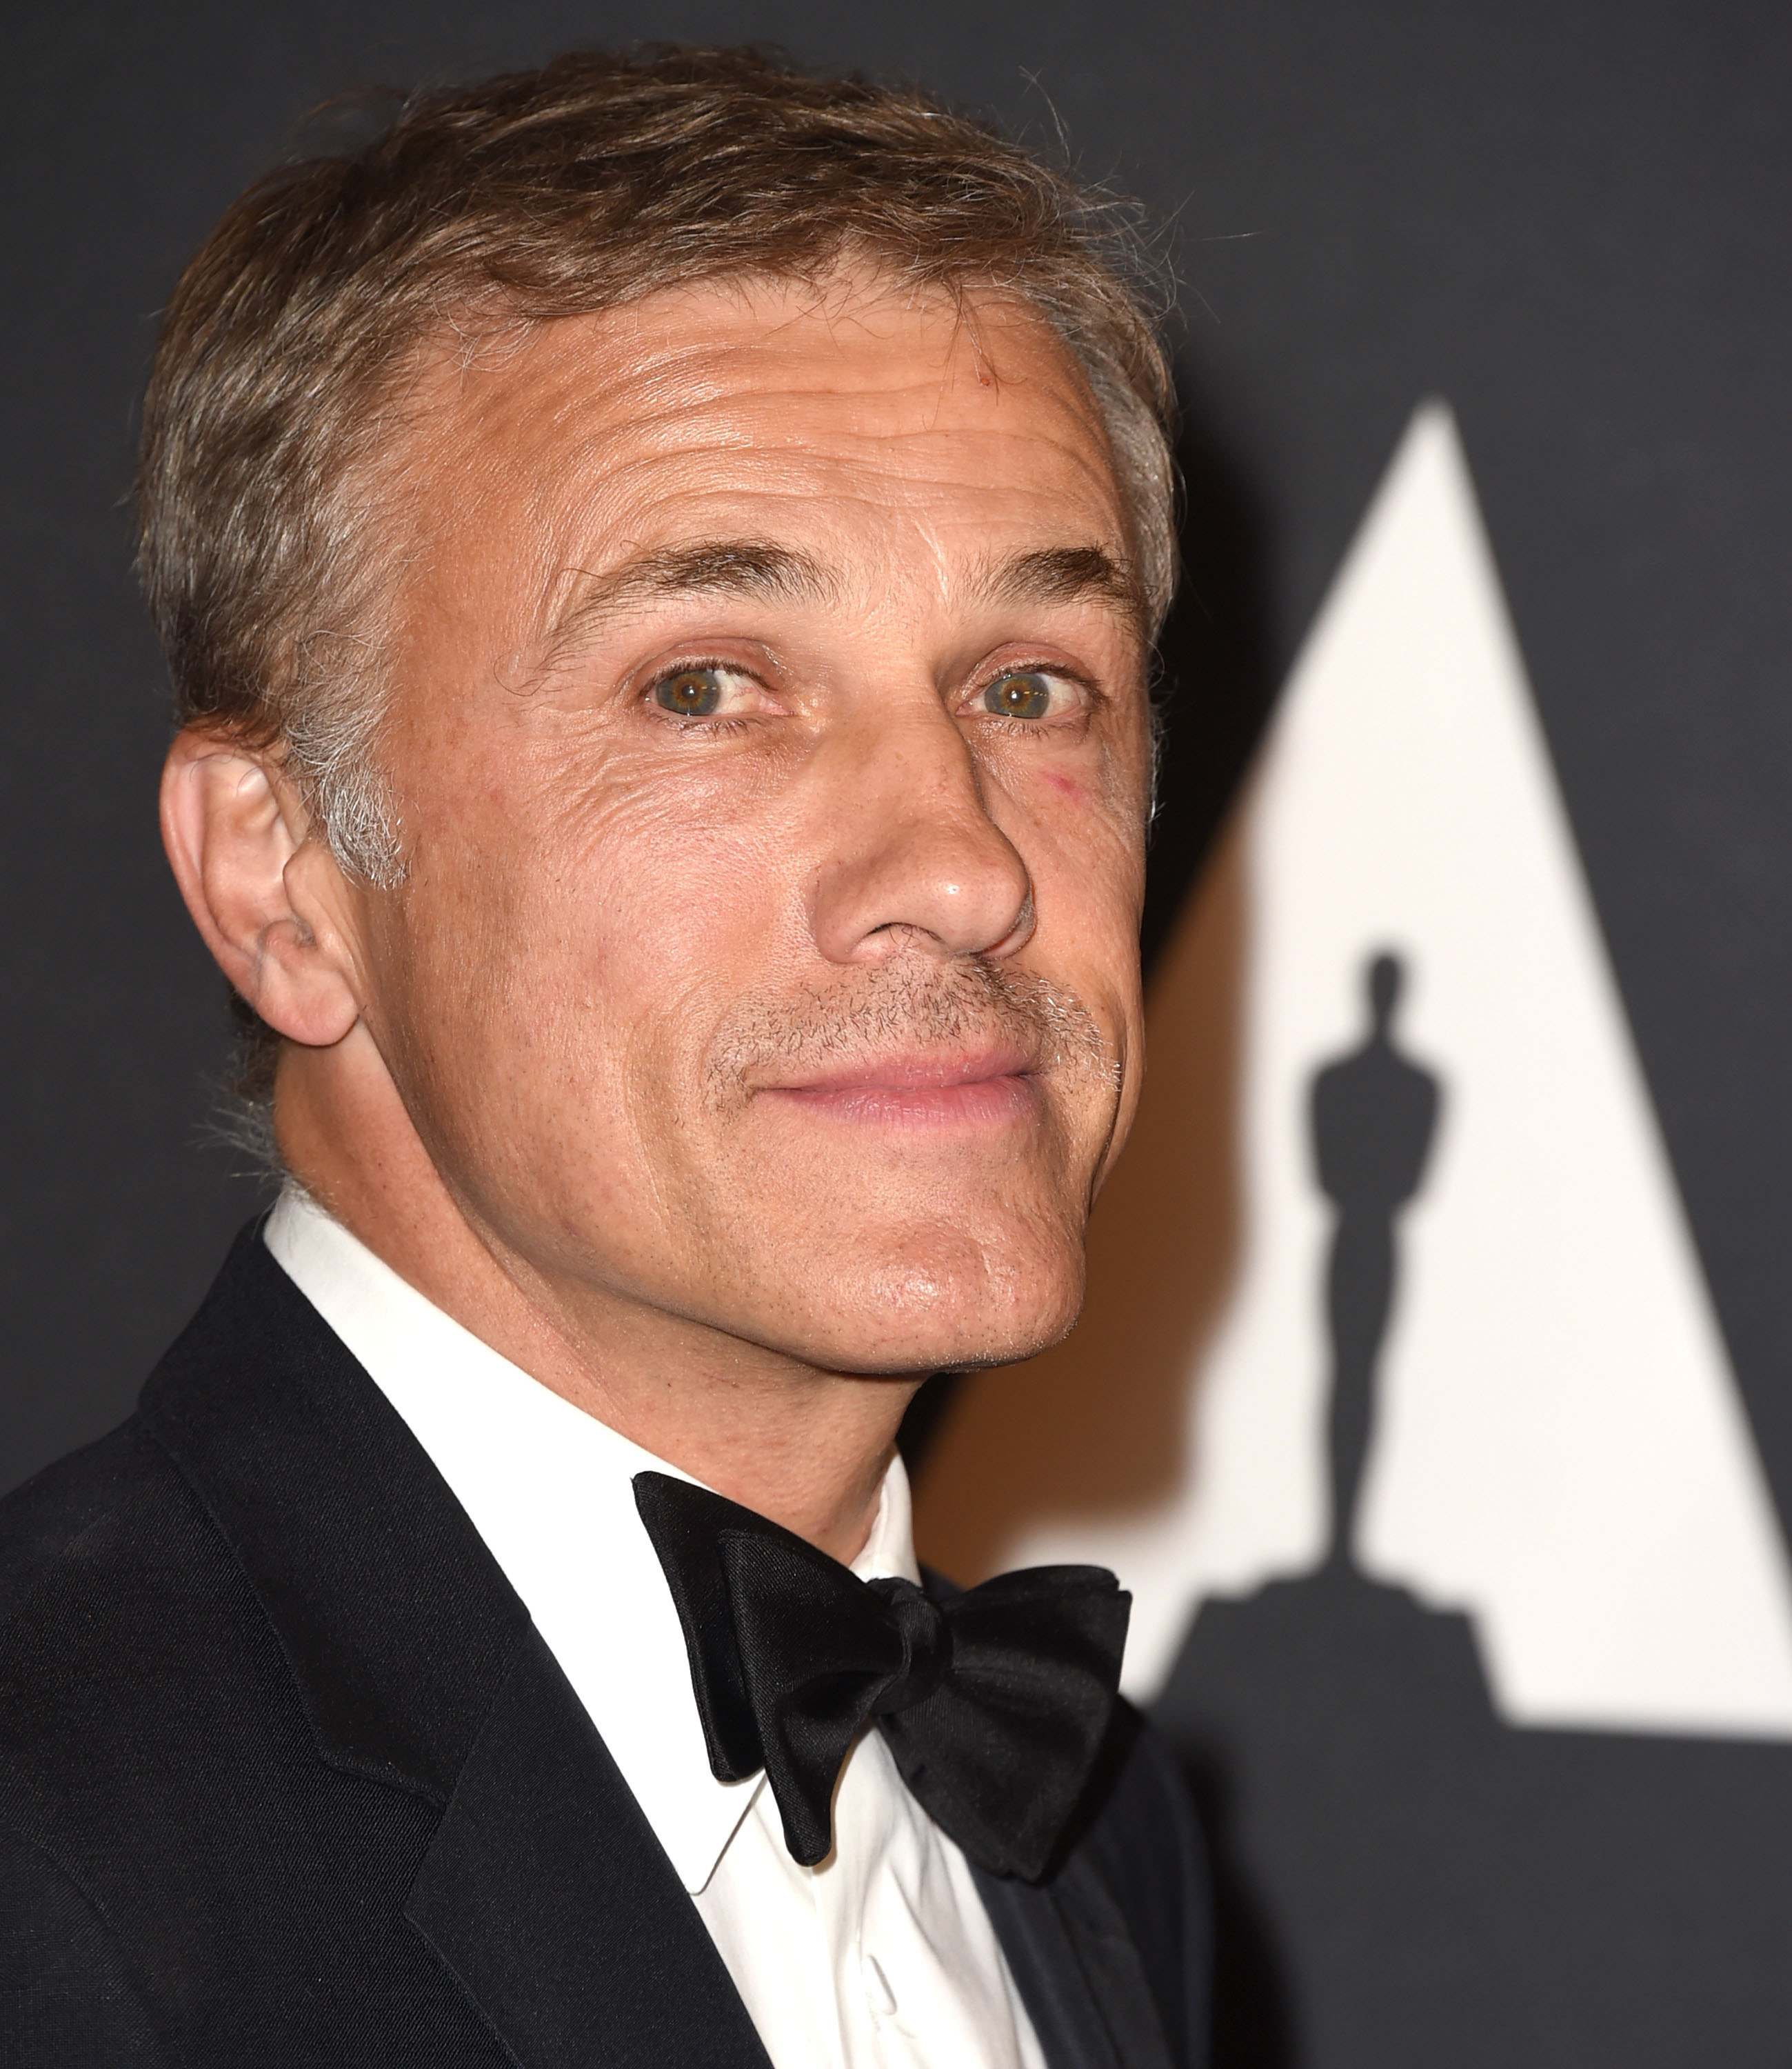 Christoph Waltz arrives at the Motion Picture Academy's 6th Annual Governors Awards at Dolby Theatre on November 8, 2014 in Hollywood, California.